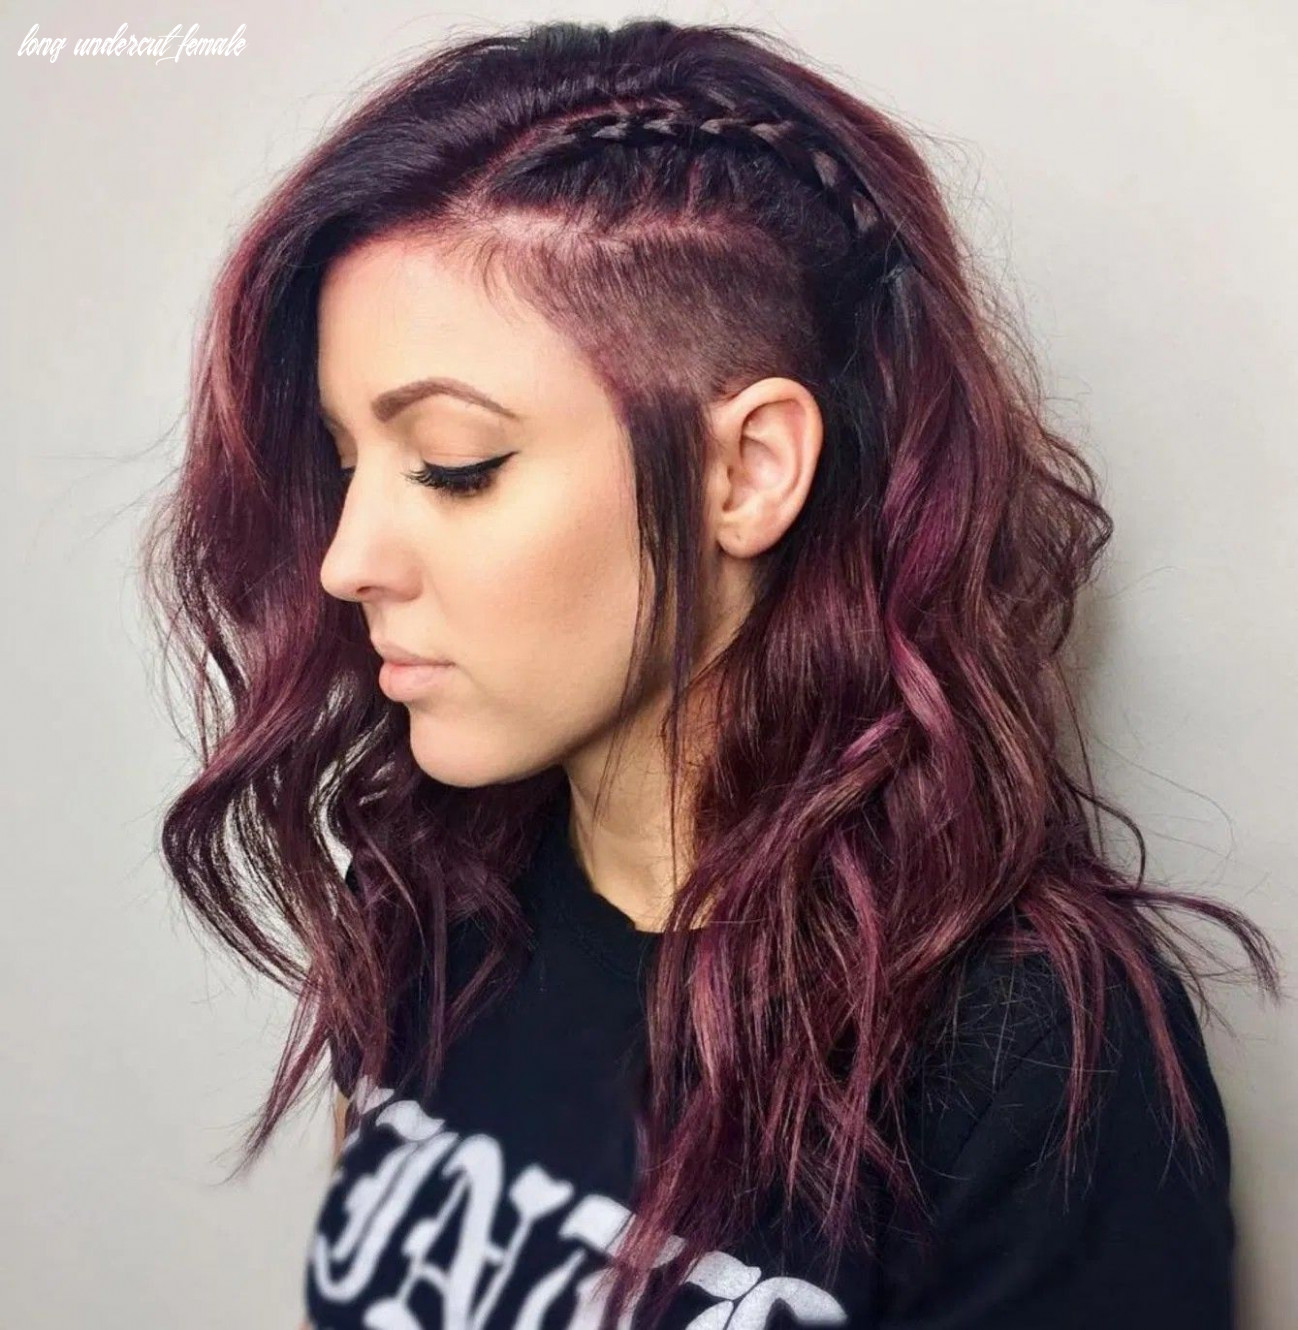 Pin by sami b on hairstyles, partly shaved | undercut long hair